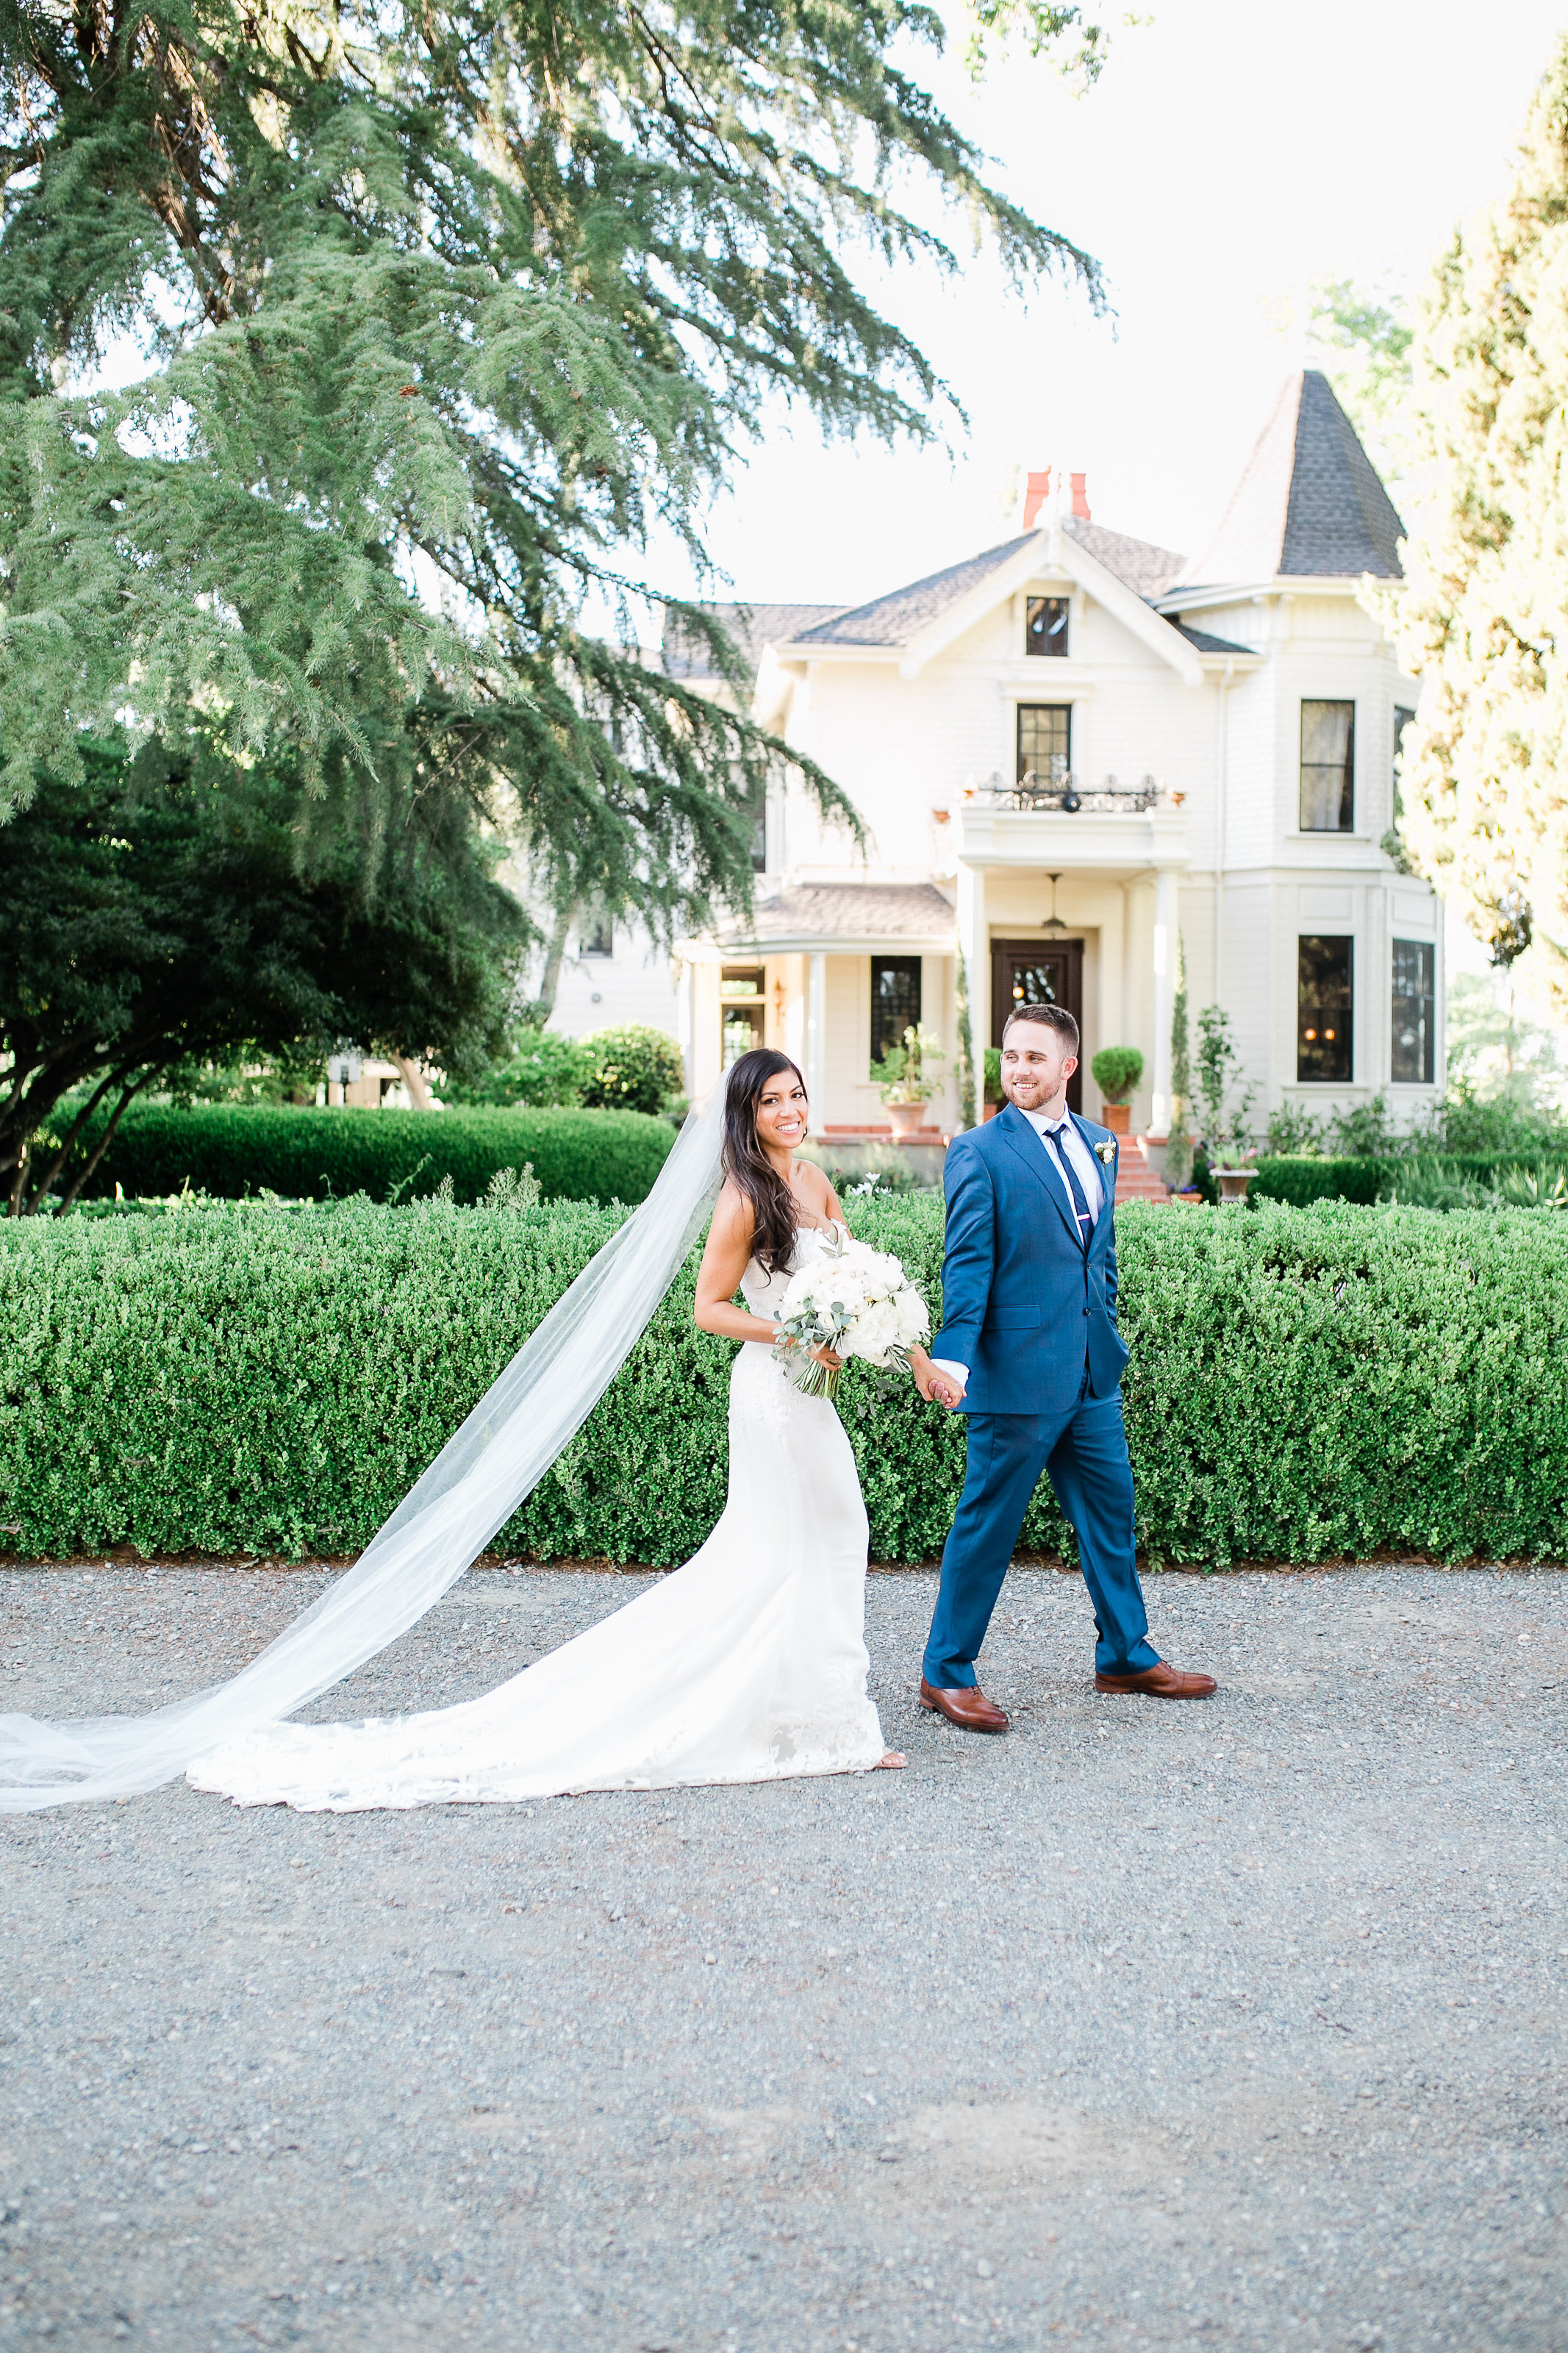 Park Winters Summer Wedding | Bride and Groom Photo | Victorian Inn Wedding